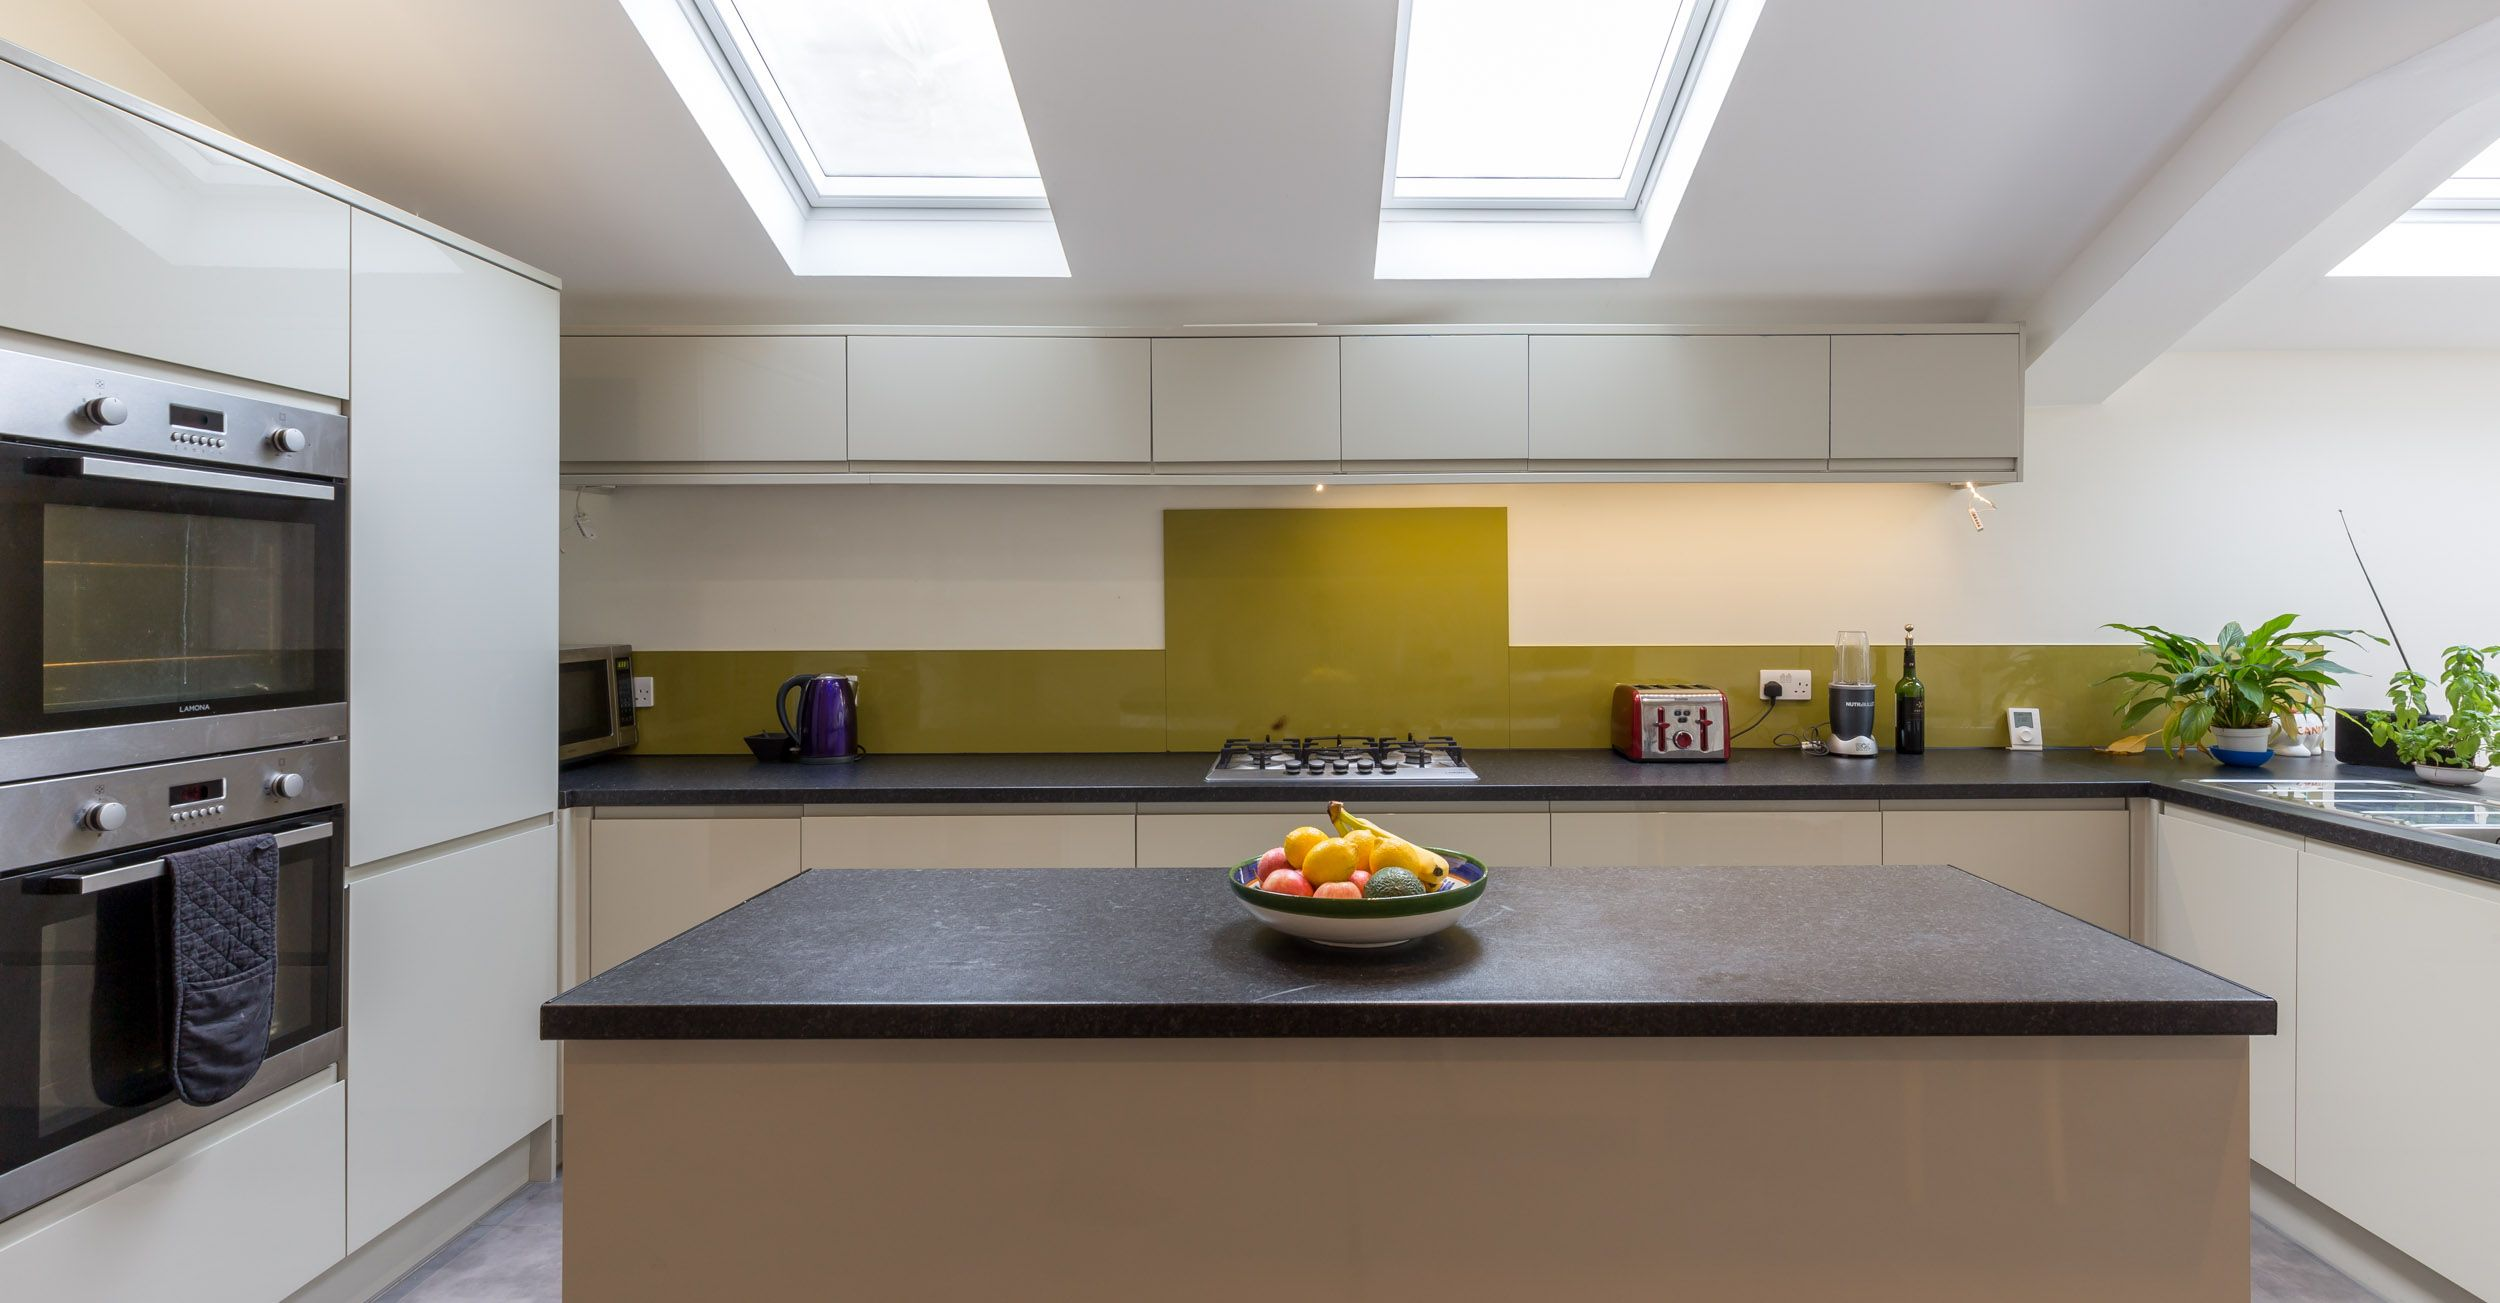 Grey kitchen modern kitchen london by lwk kitchens london - Modern Kitchen Extension London Home Kitchen Island Velux Rooflights Double Oven